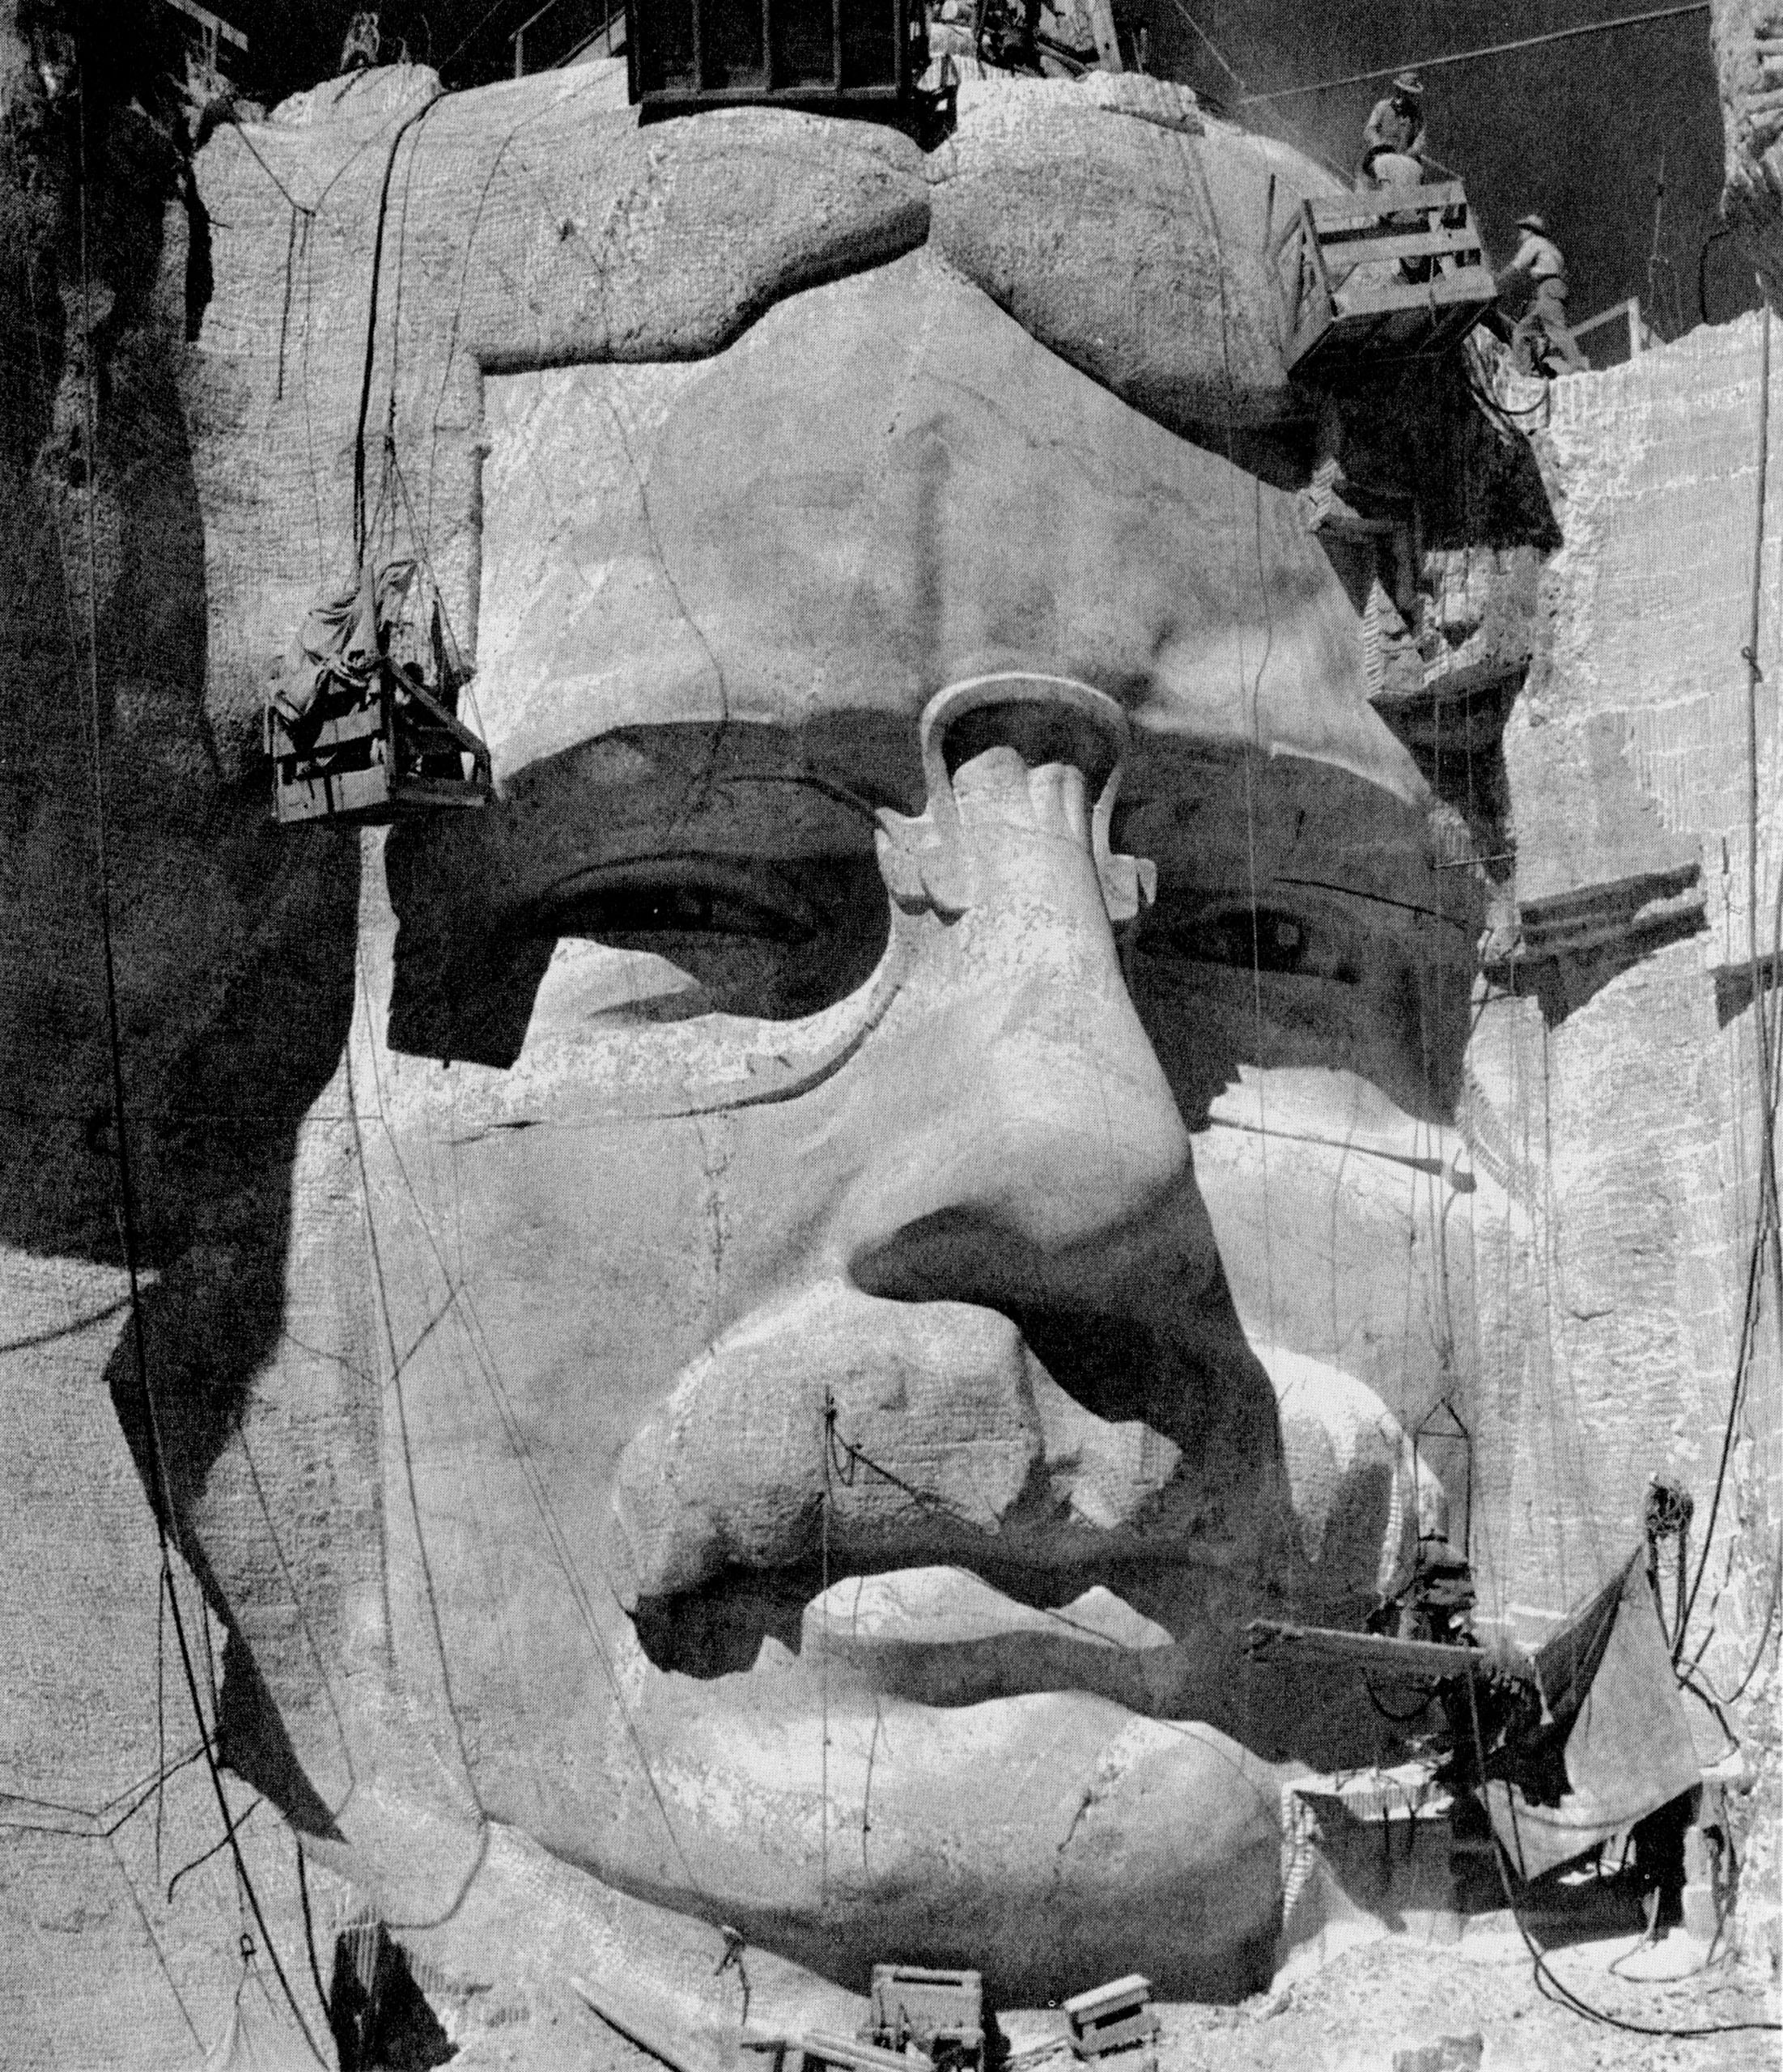 The head of Theodore Roosevelt under construction, c. 1930s. Roosevelt was dedicated in 1939.